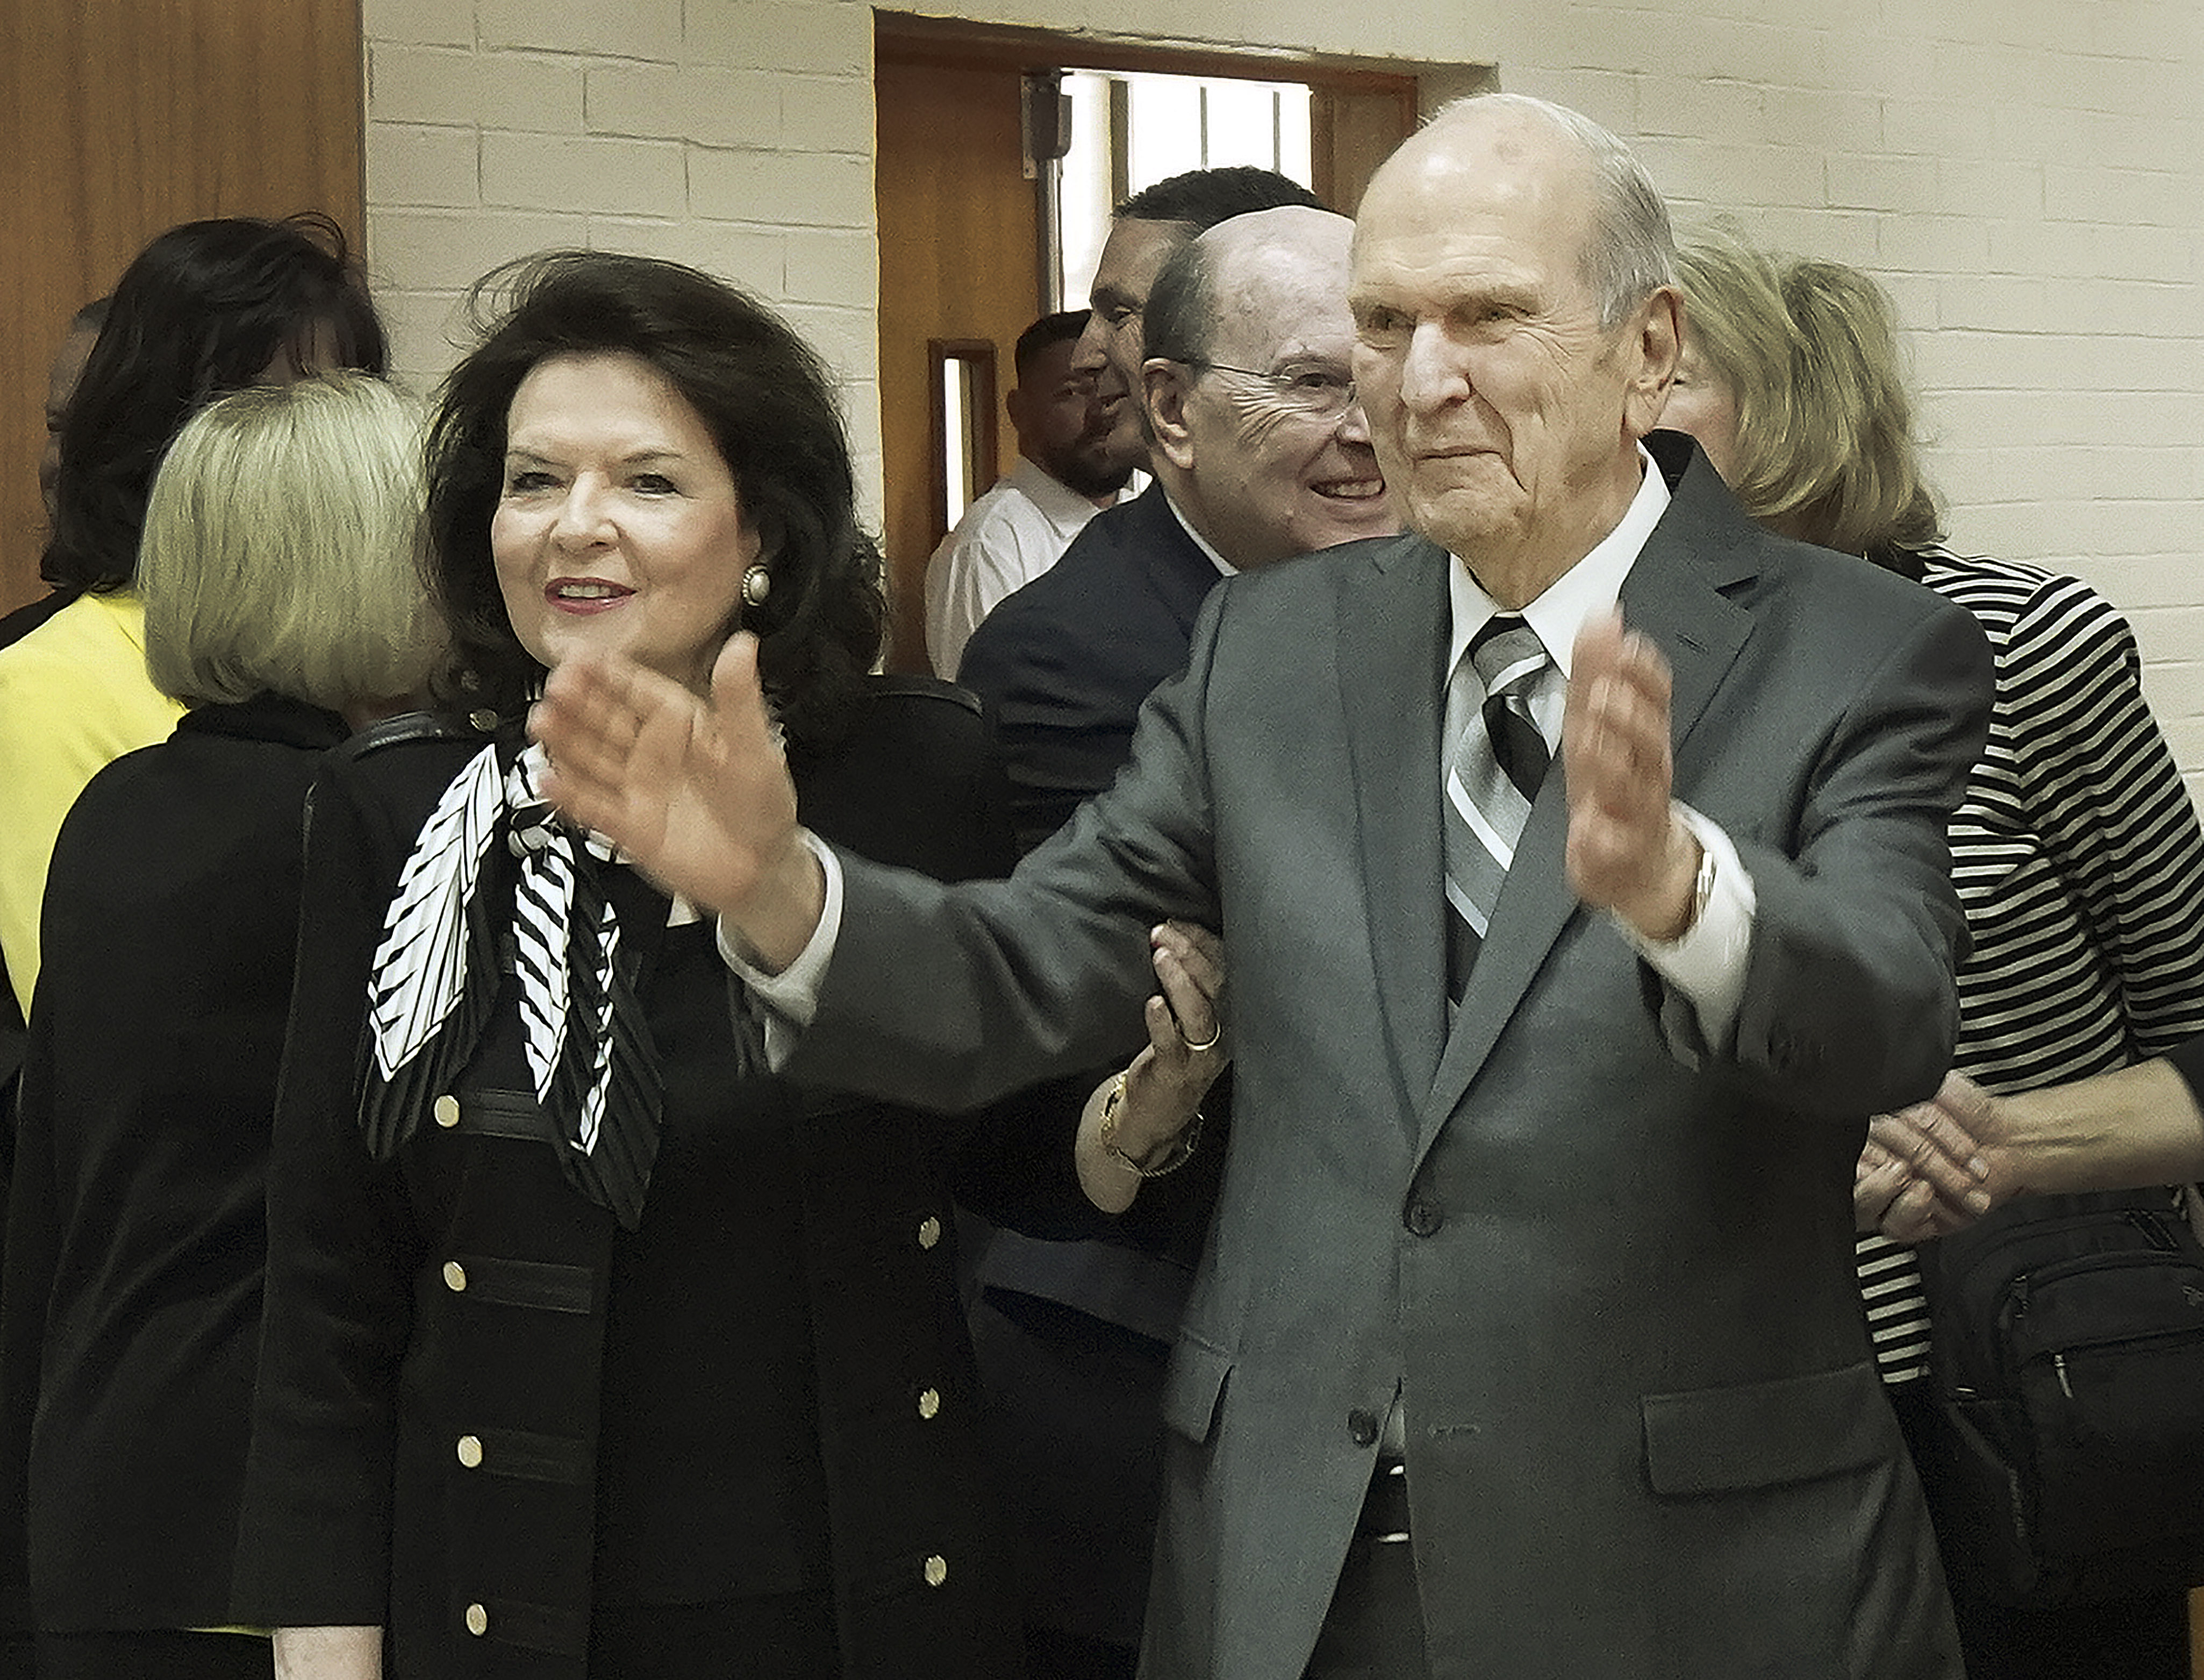 President Russell M. Nelson of The Church of Jesus Christ of Latter-day Saints and his wife Sister Wendy Nelson react to missionaries before a Brasilia Mission meeting in Brasilia, Brazil on Friday, Aug. 30, 2019.